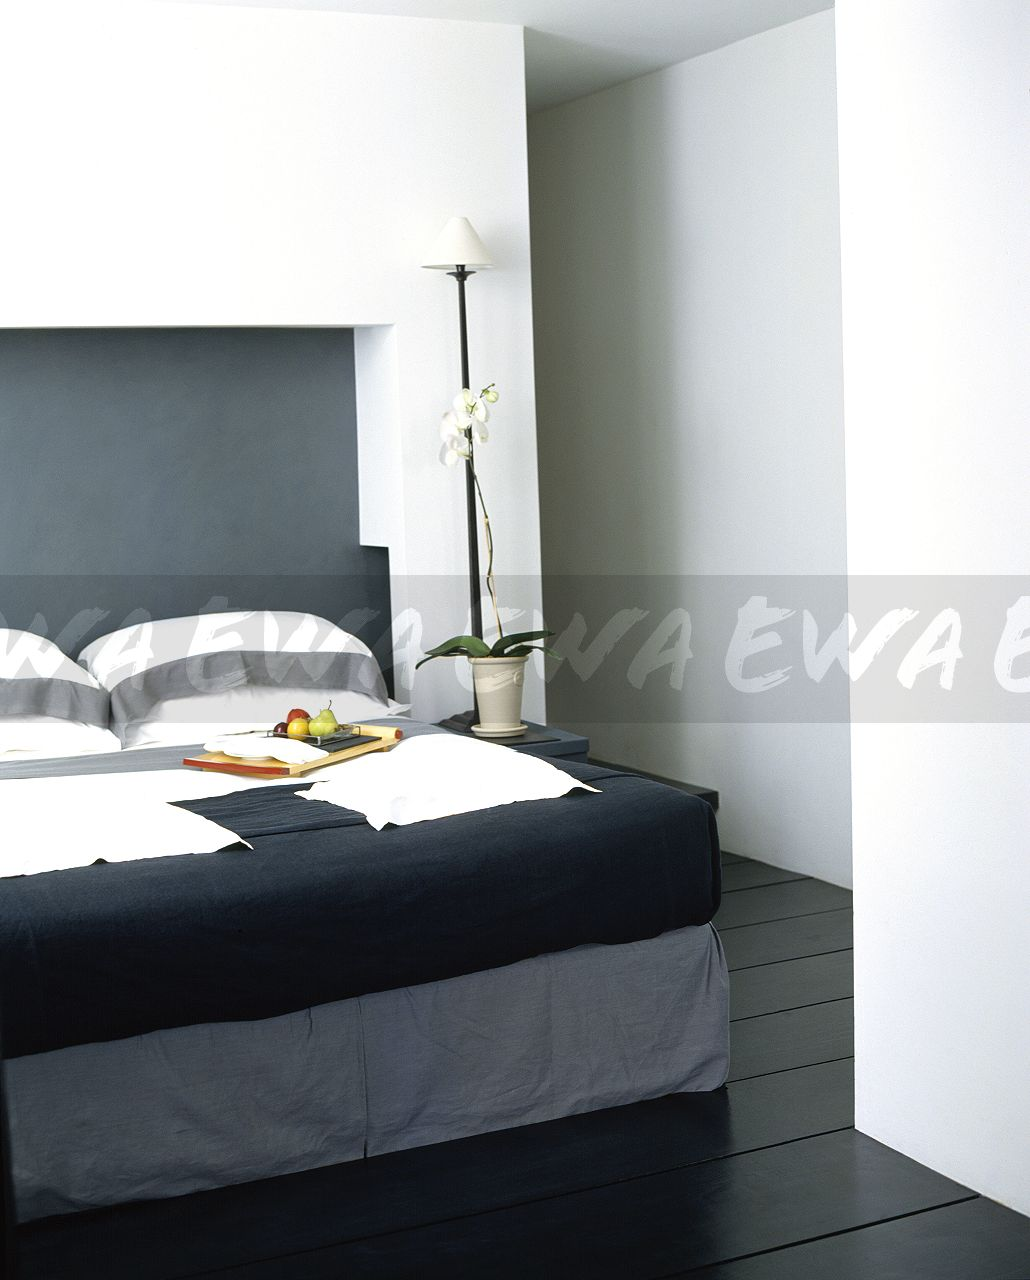 Modern Family Pillows On Bed : Image: Black+white striped pillows and black bed-cover on bed in modern white bedroom - EWA ...